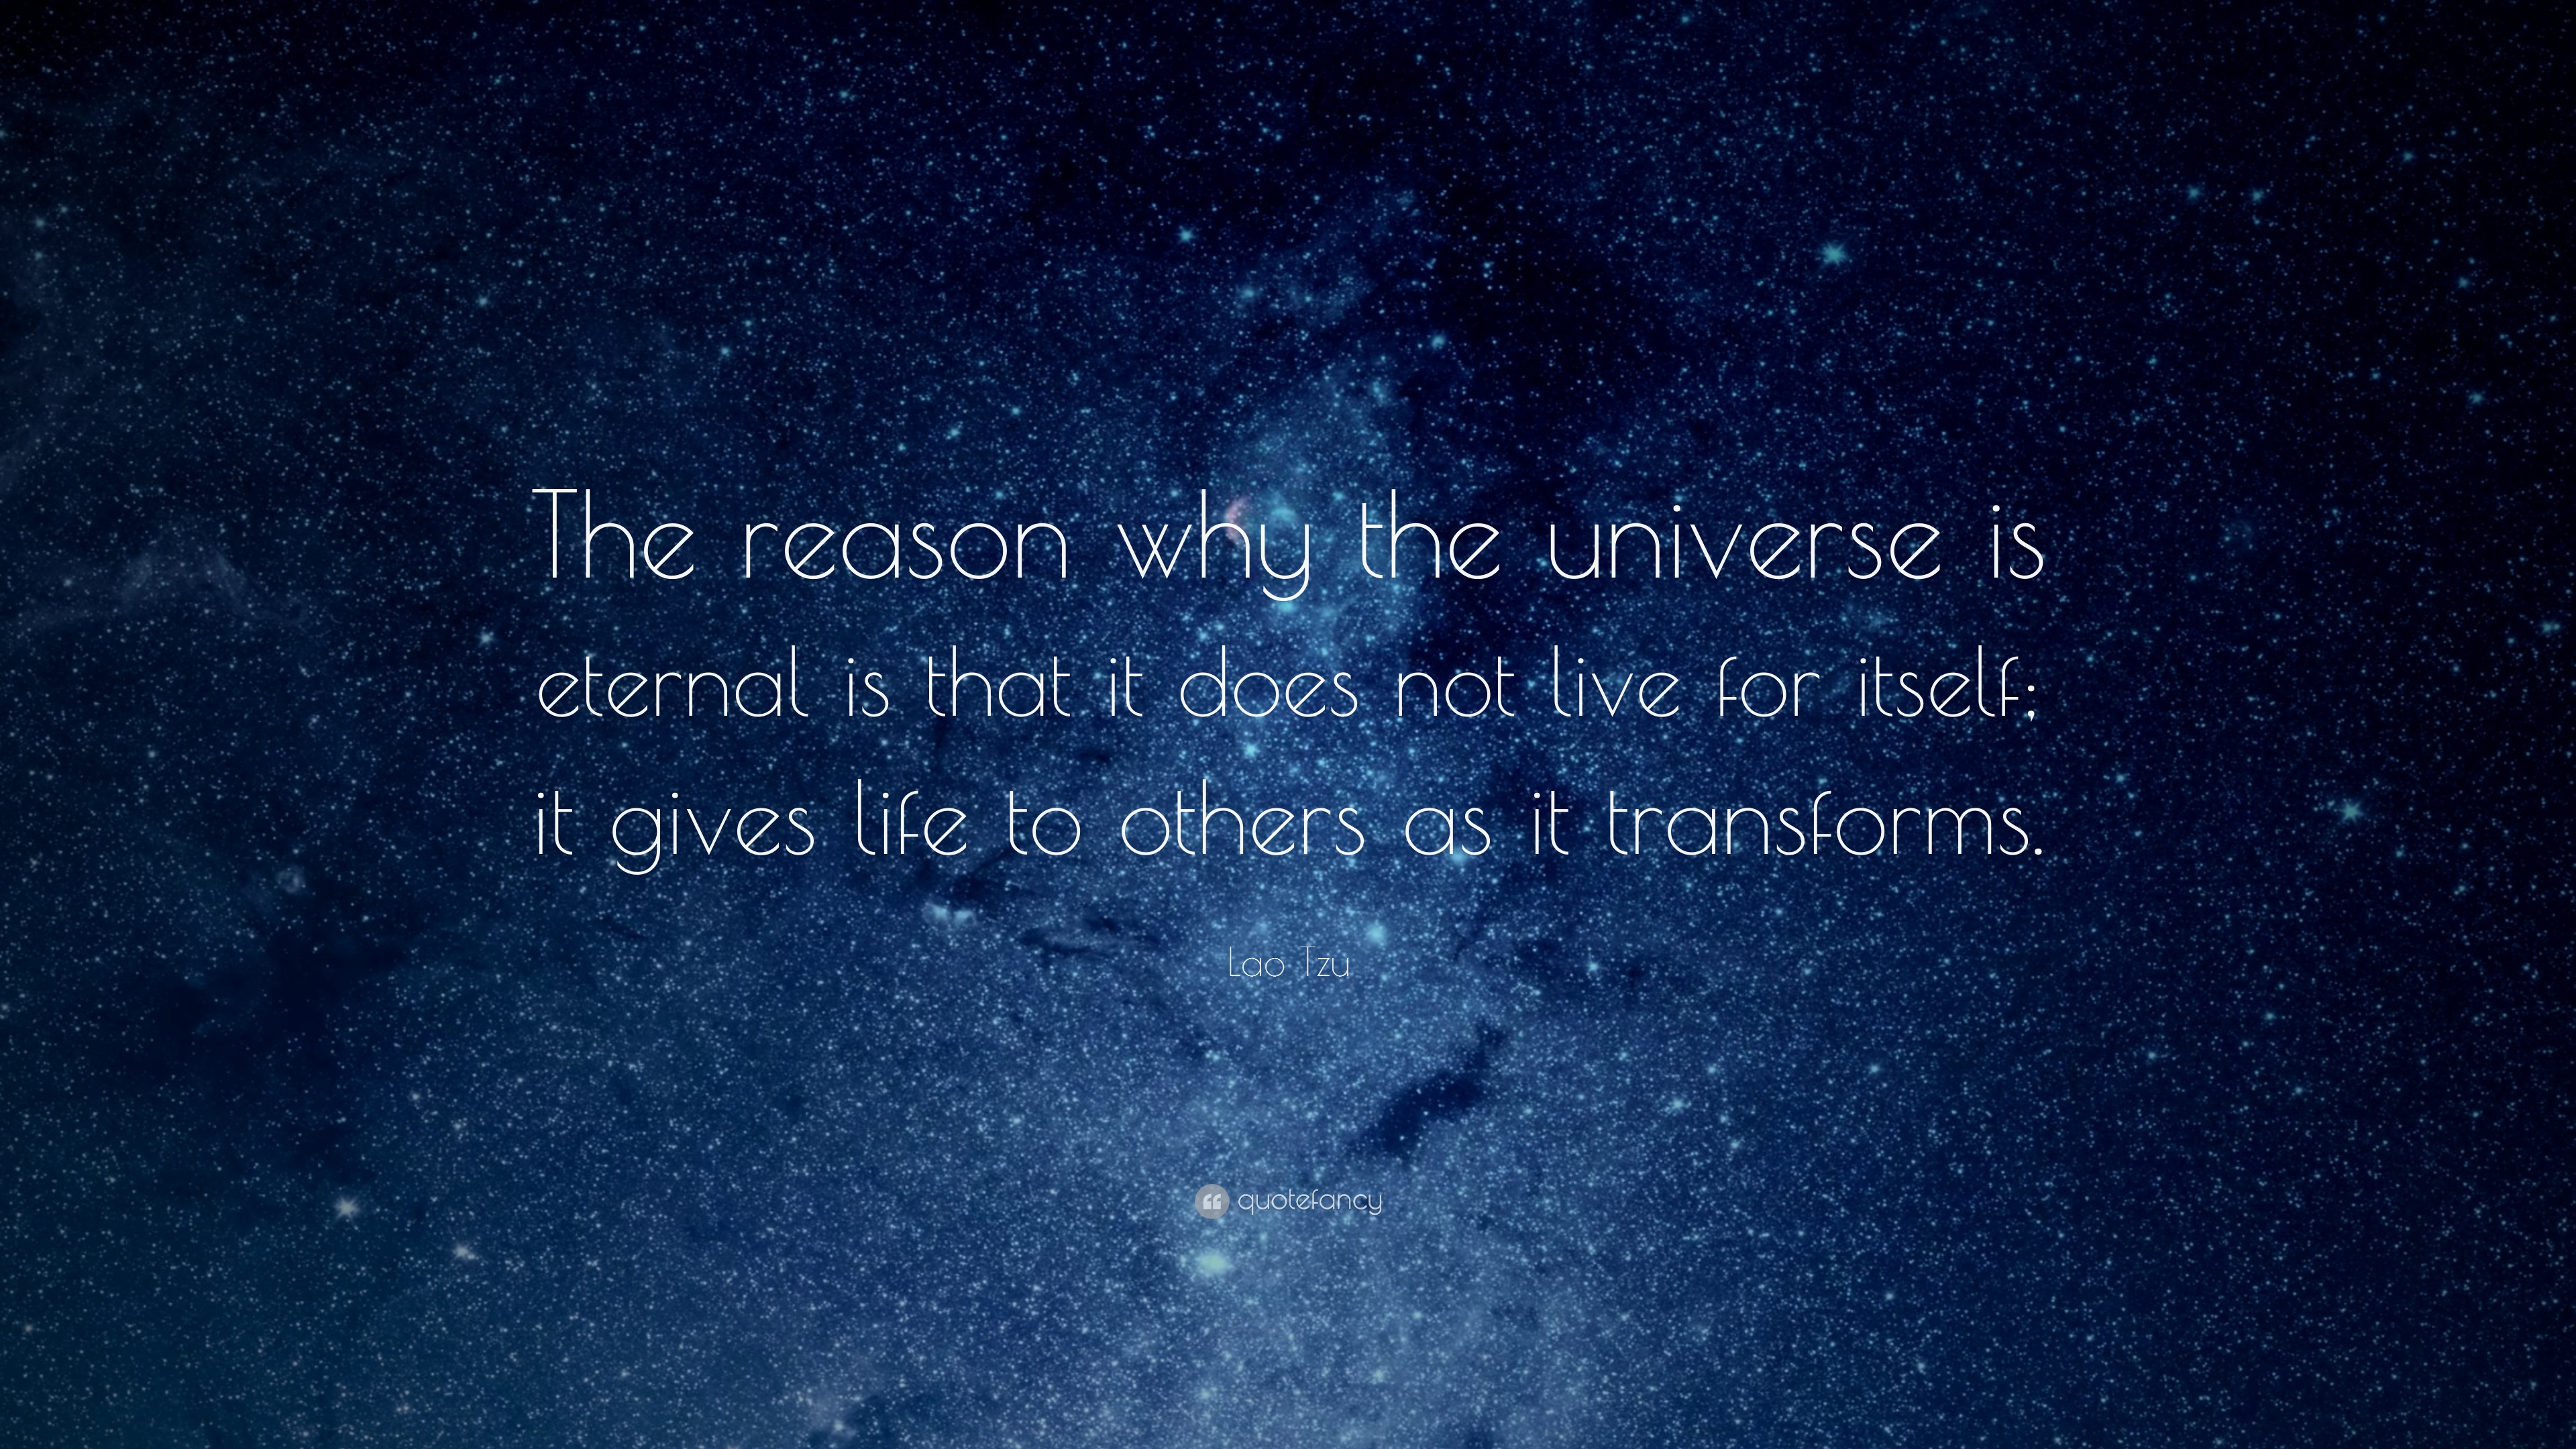 """""""The reason why the universe is eternal is that it does not live for itself; it gives life to others as it transforms.""""Get Inspired. Get Motivated."""